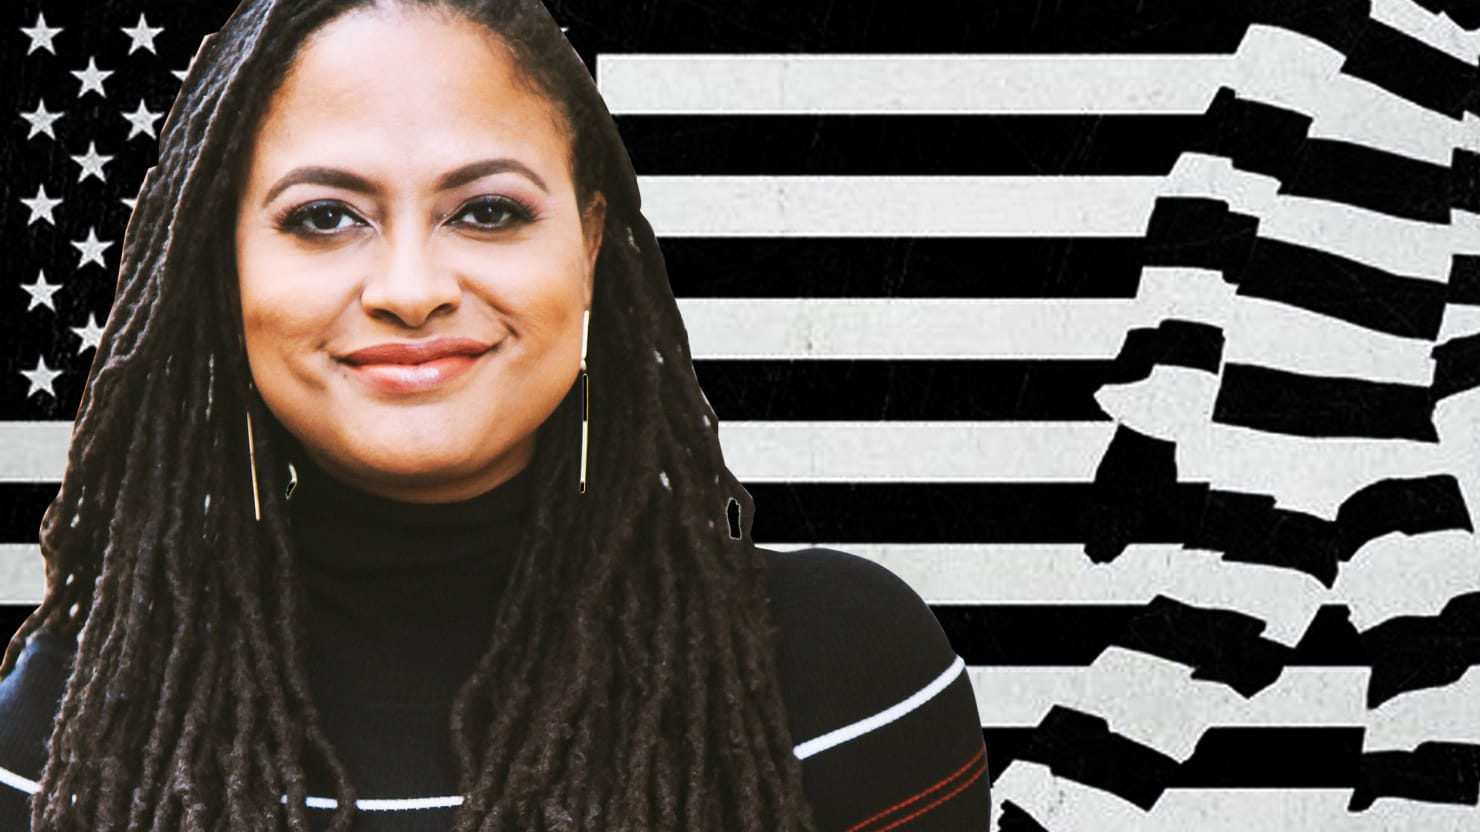 'The 13th': Ava DuVernay's Damning Netflix Doc Finds the Truth About Mass Incarceration